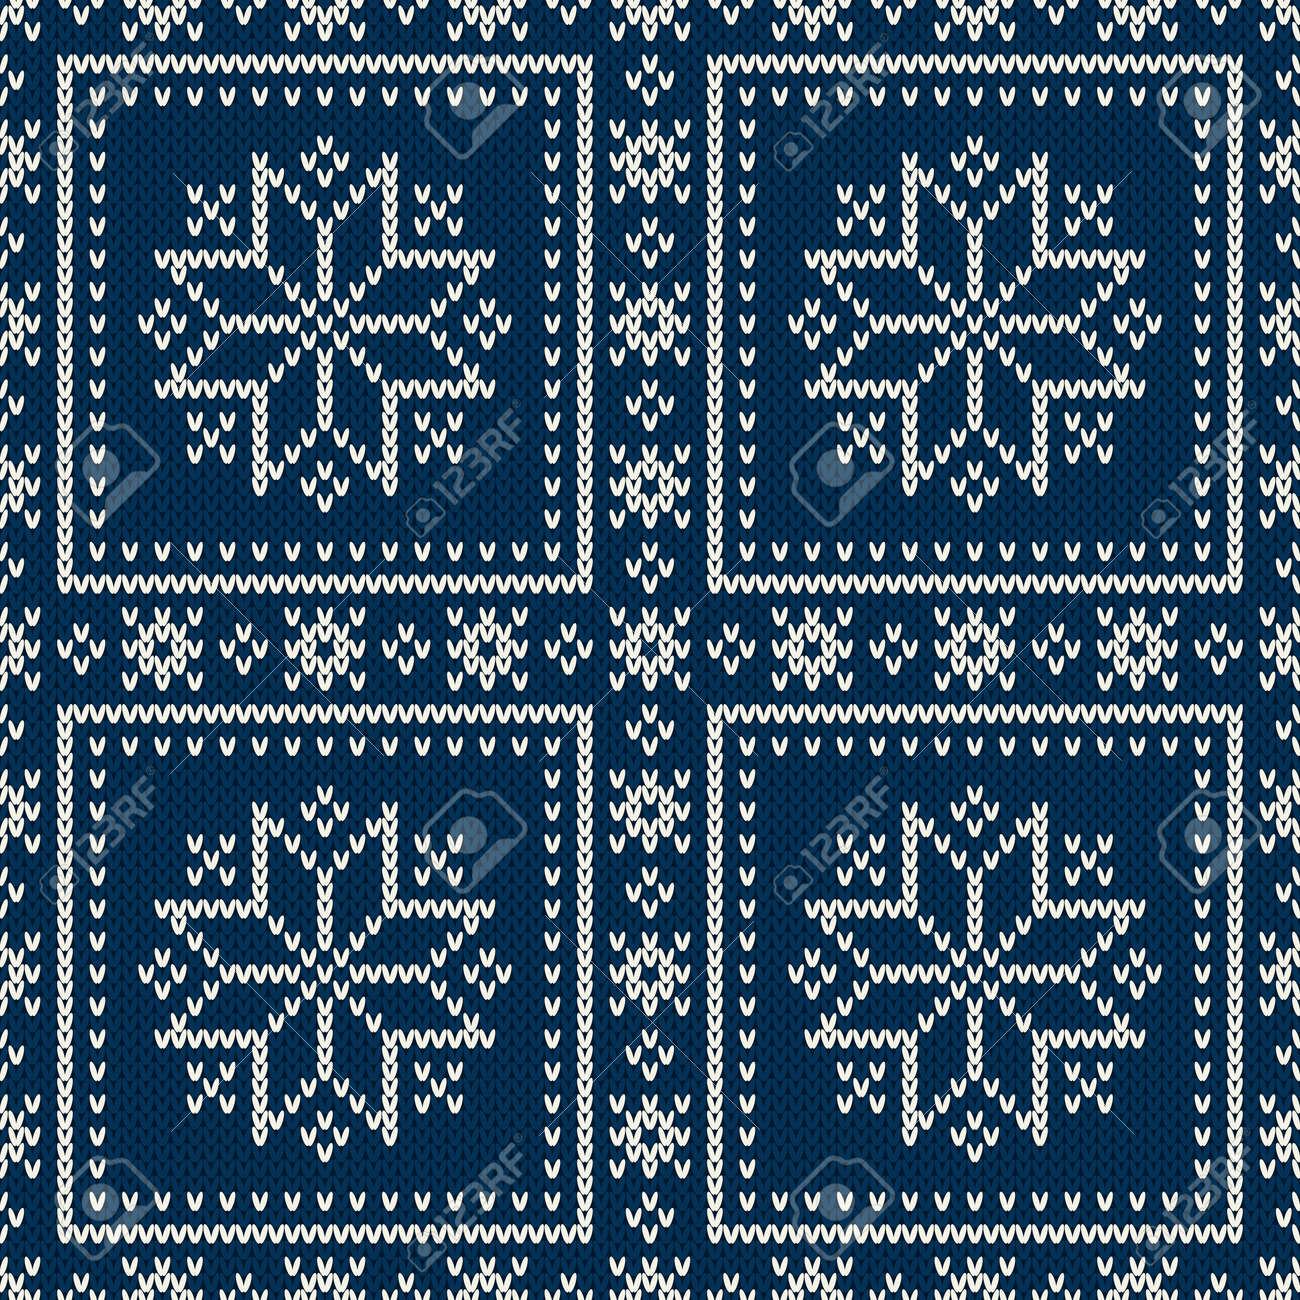 Christmas Holiday Knitted Pattern With Snowflakes. Knitting Sweater ...